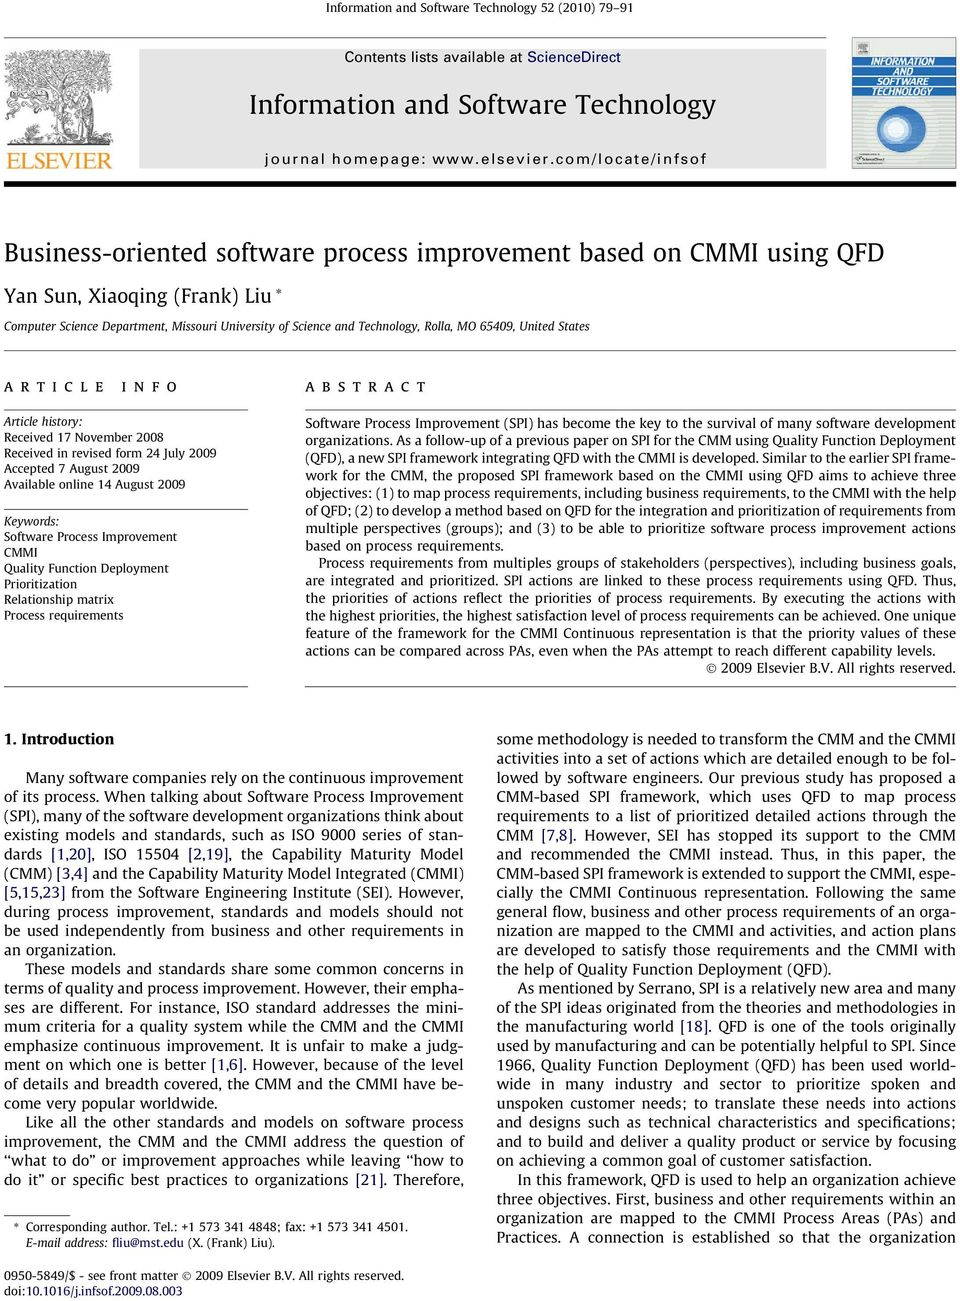 info abstract Article history: Received 17 November 2008 Received in revised form 24 July 2009 Accepted 7 August 2009 Available online 14 August 2009 Keywords: Software ocess Improvement CMMI Quality